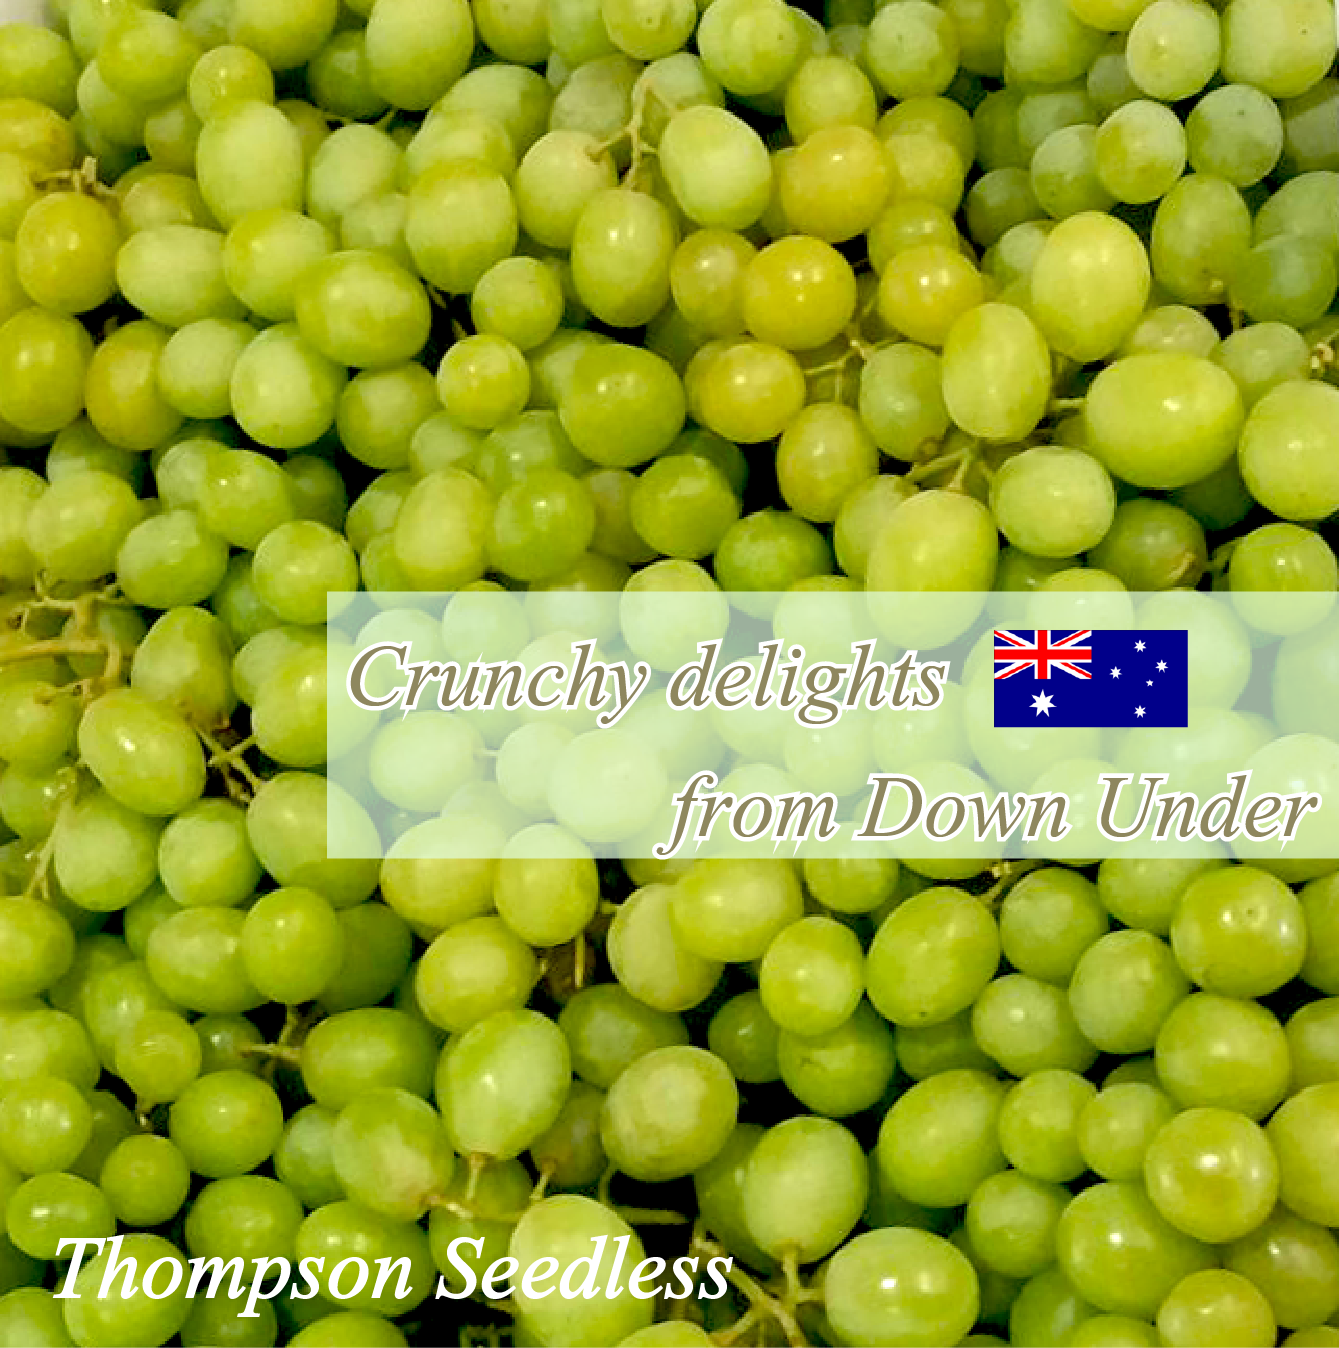 Australian Thompson Seedless grapes